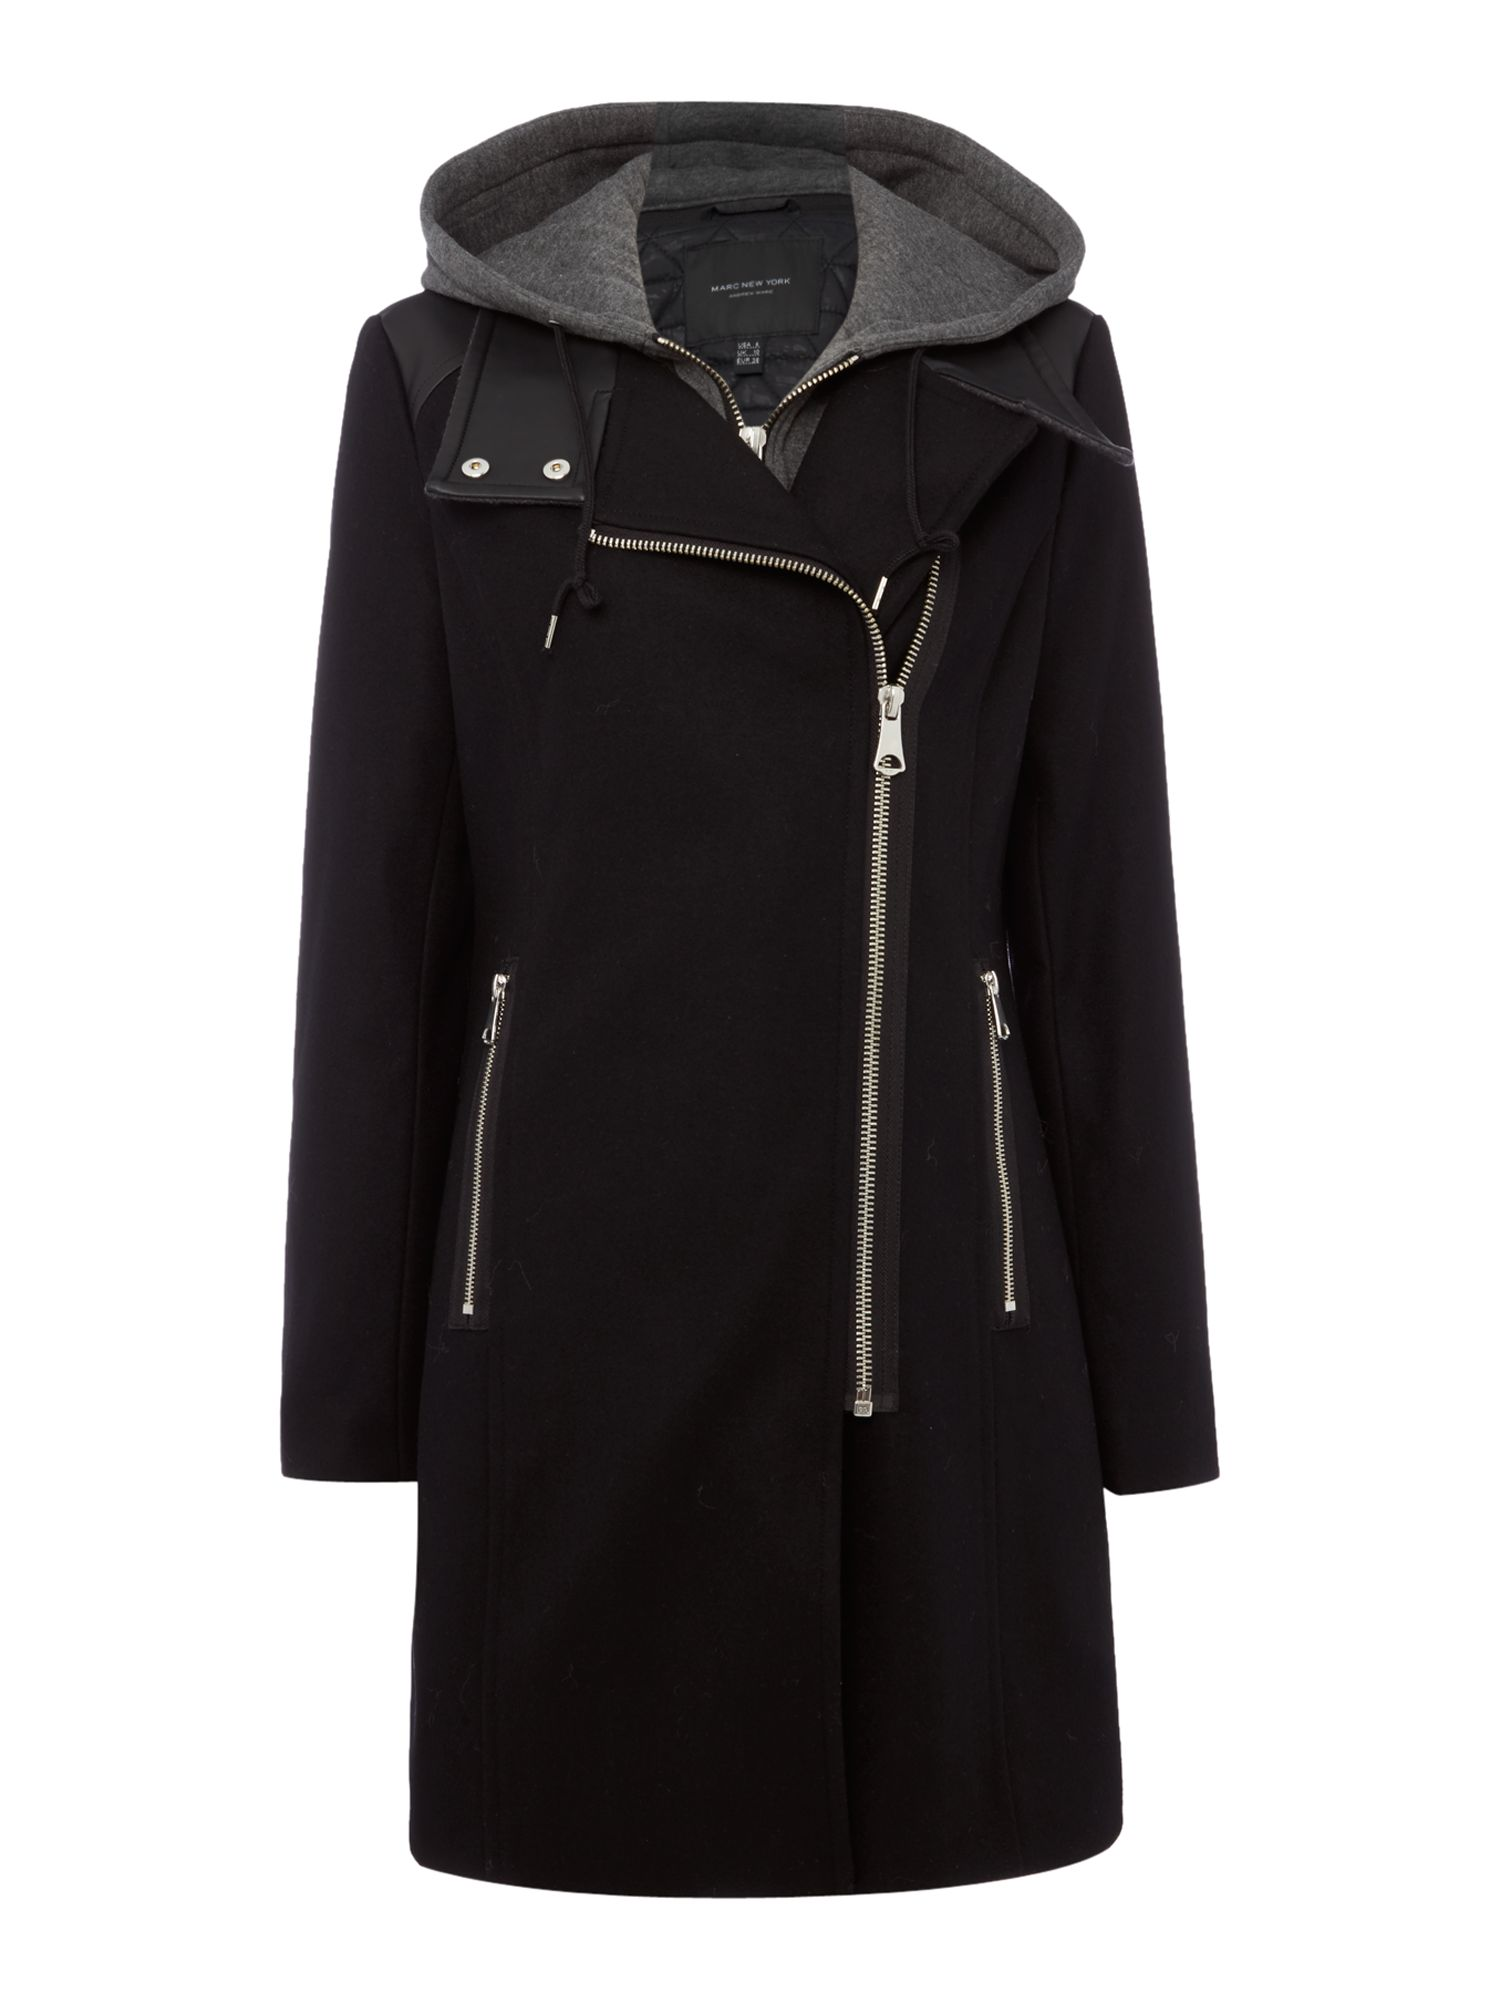 Andrew Marc Wool Coat with Faux Leather Trim, Black